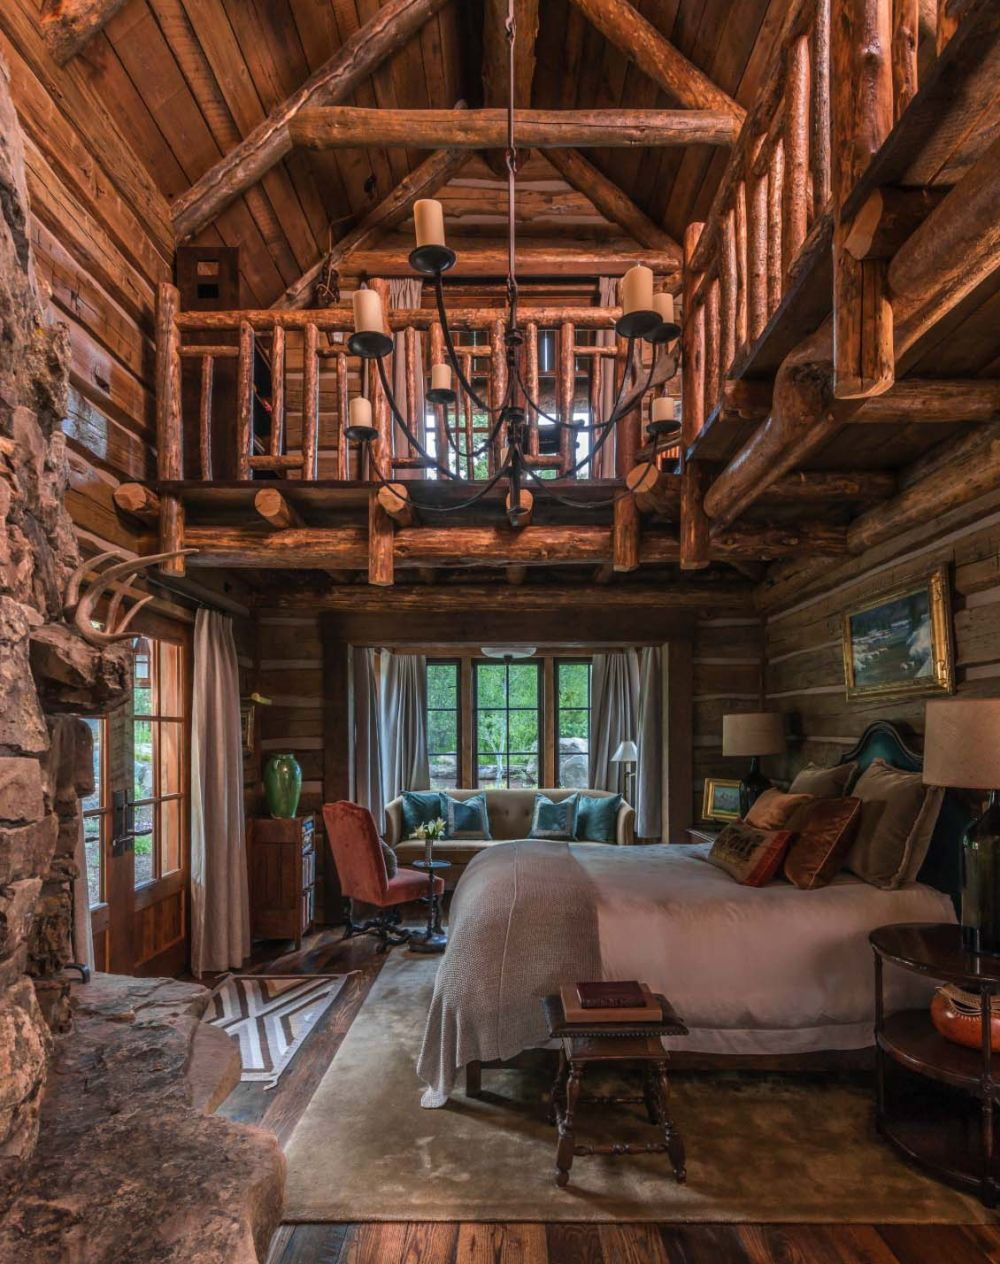 Super rustic interiors need soft furnishings.